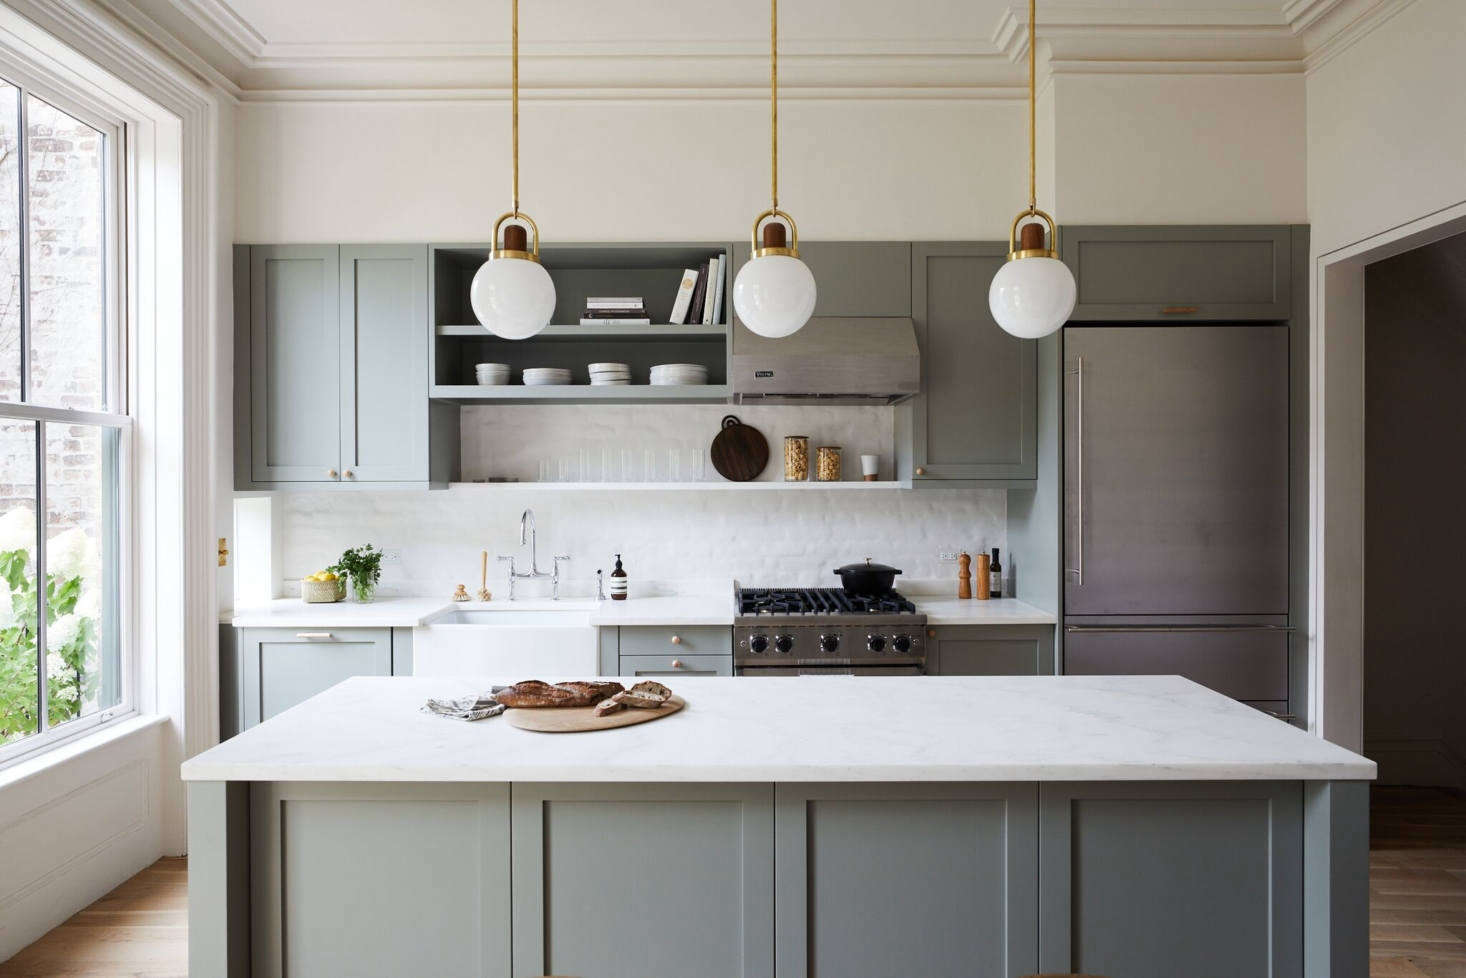 Ikea Kitchen Design In Praise Of Ikea 20 Ikea Kitchens From The Remodelista Archives